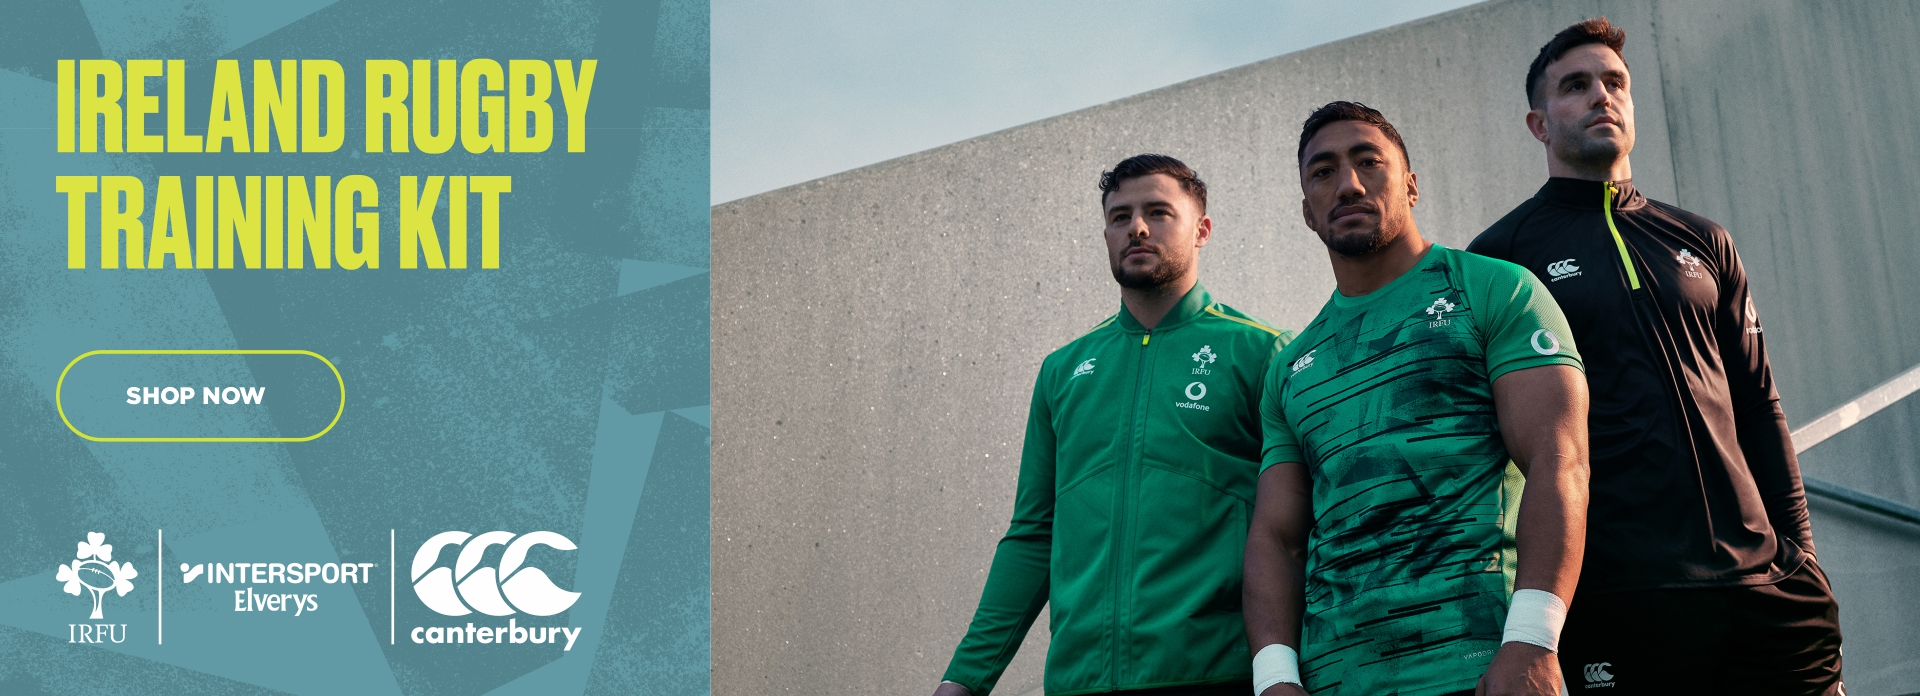 Elverys_IRFU_Training_Banner_New_1920X696.jpg